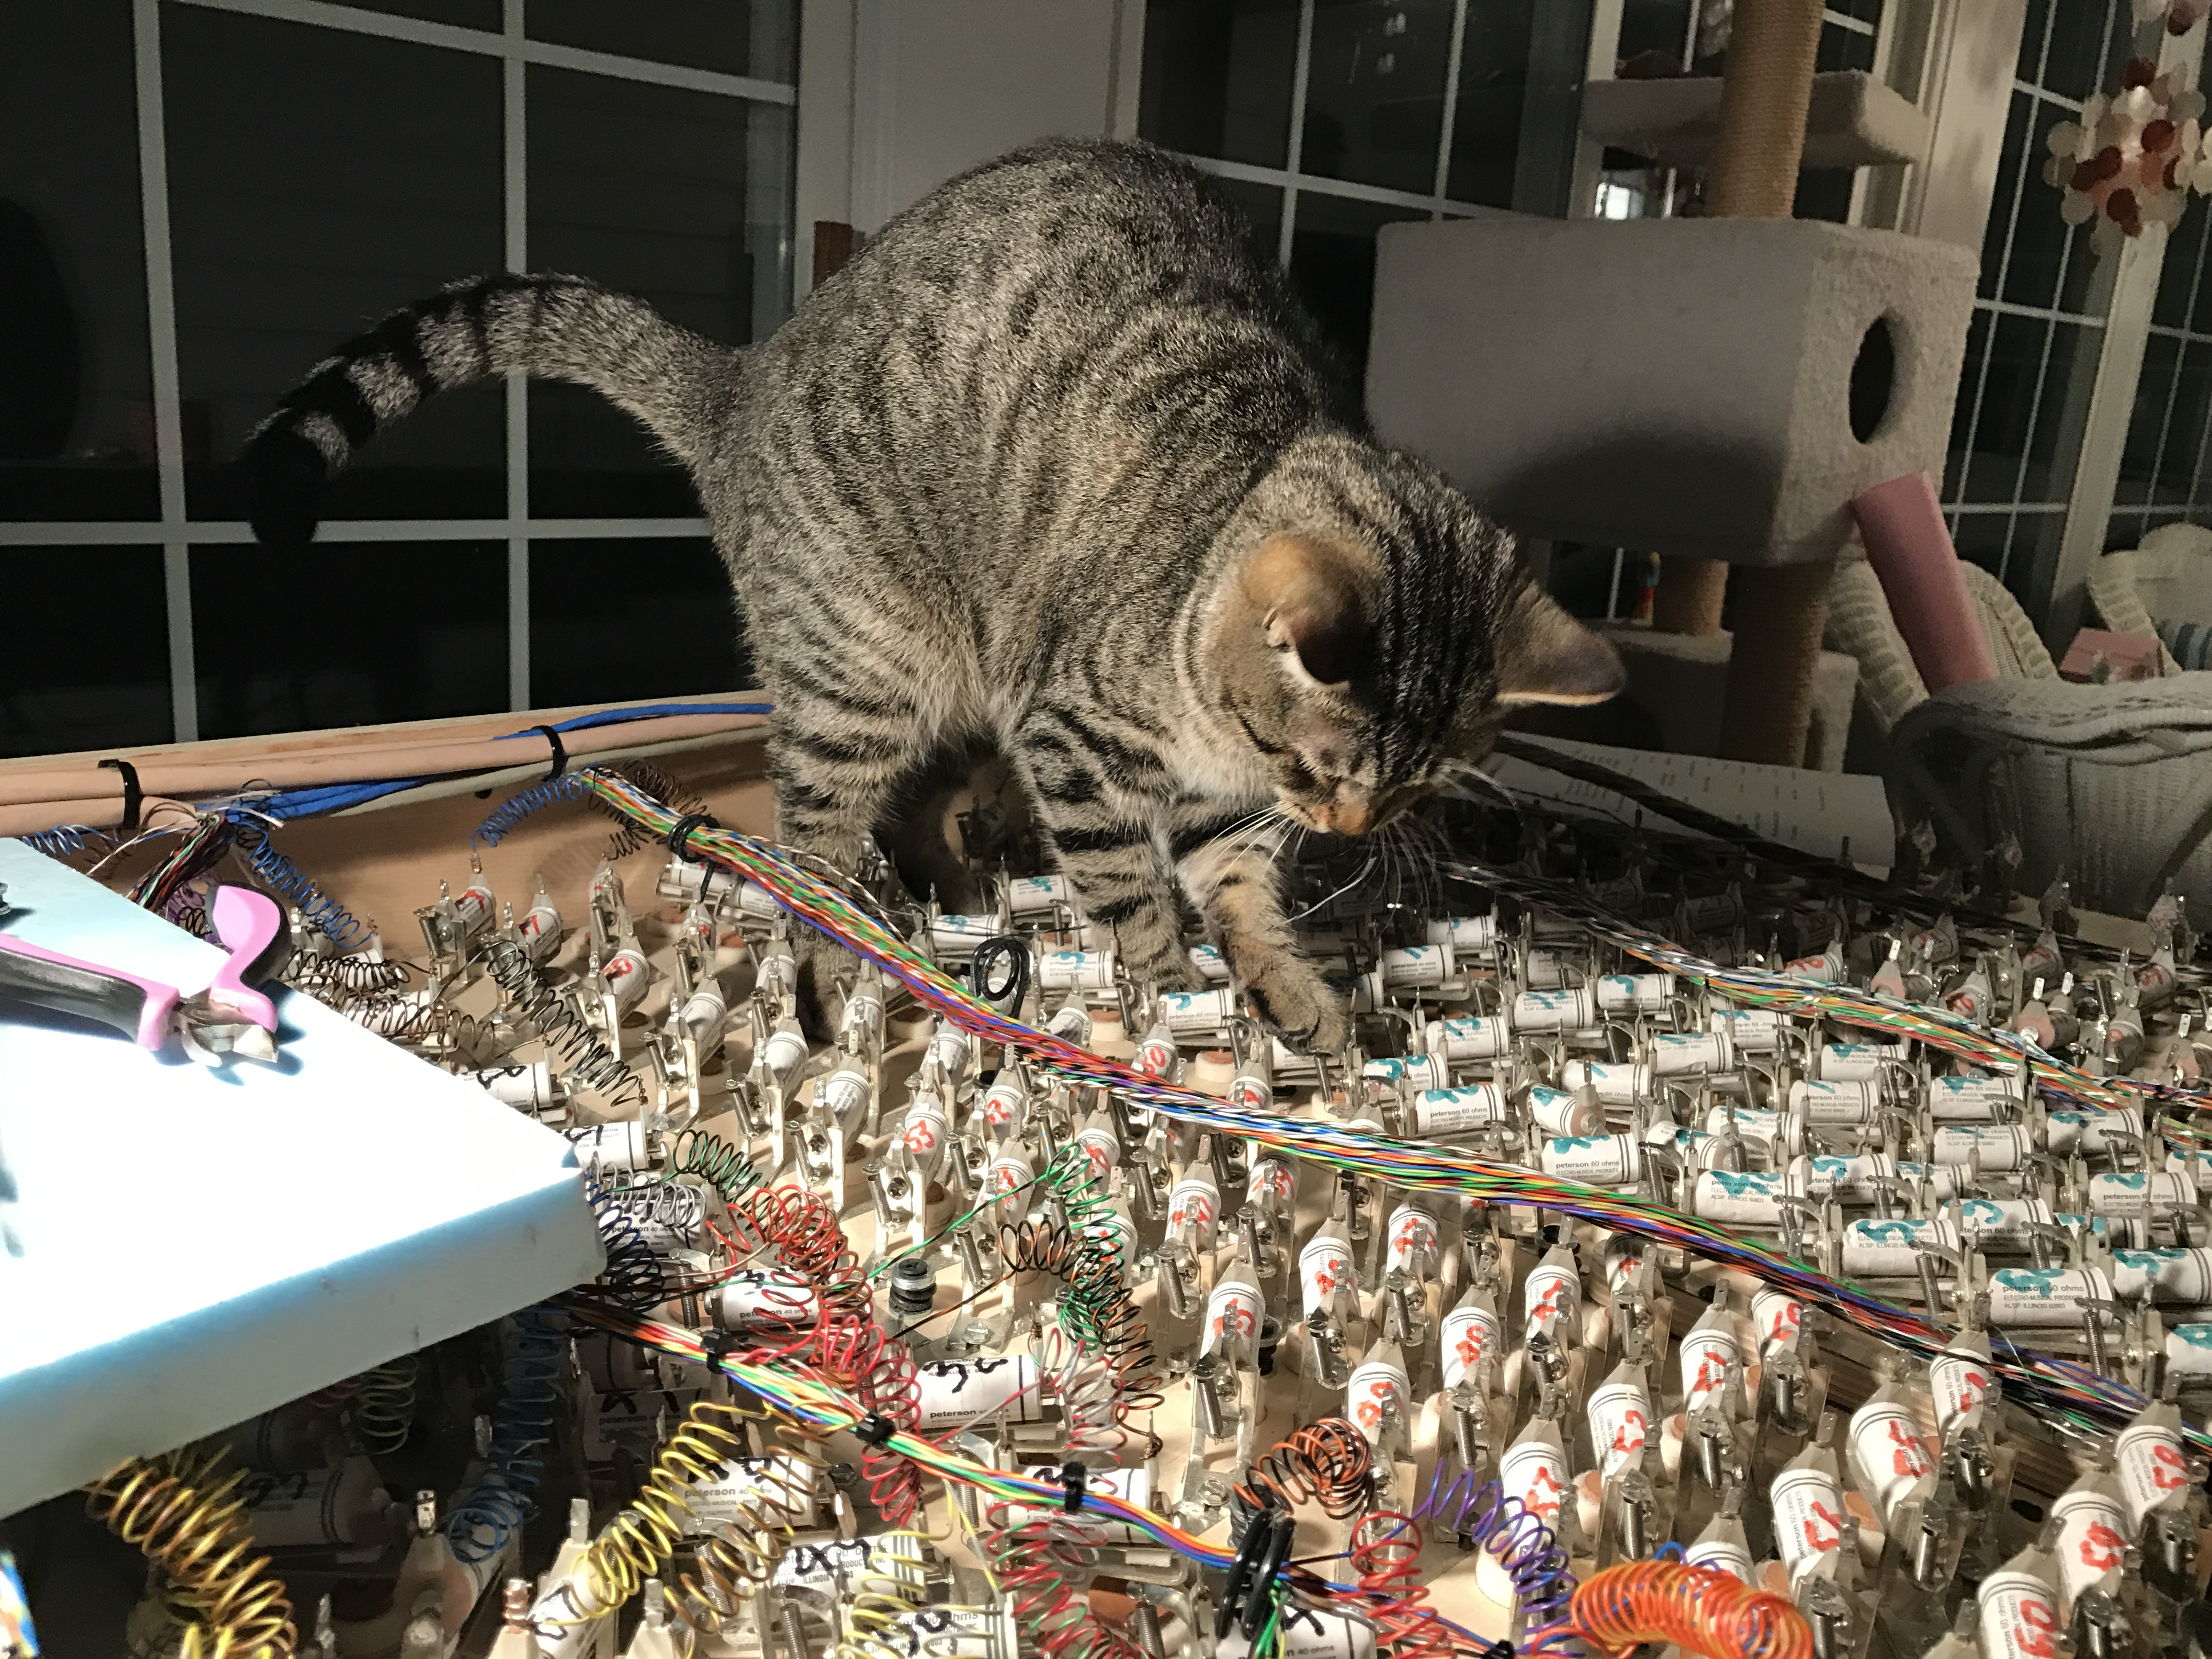 Brillo loves to help with wiring